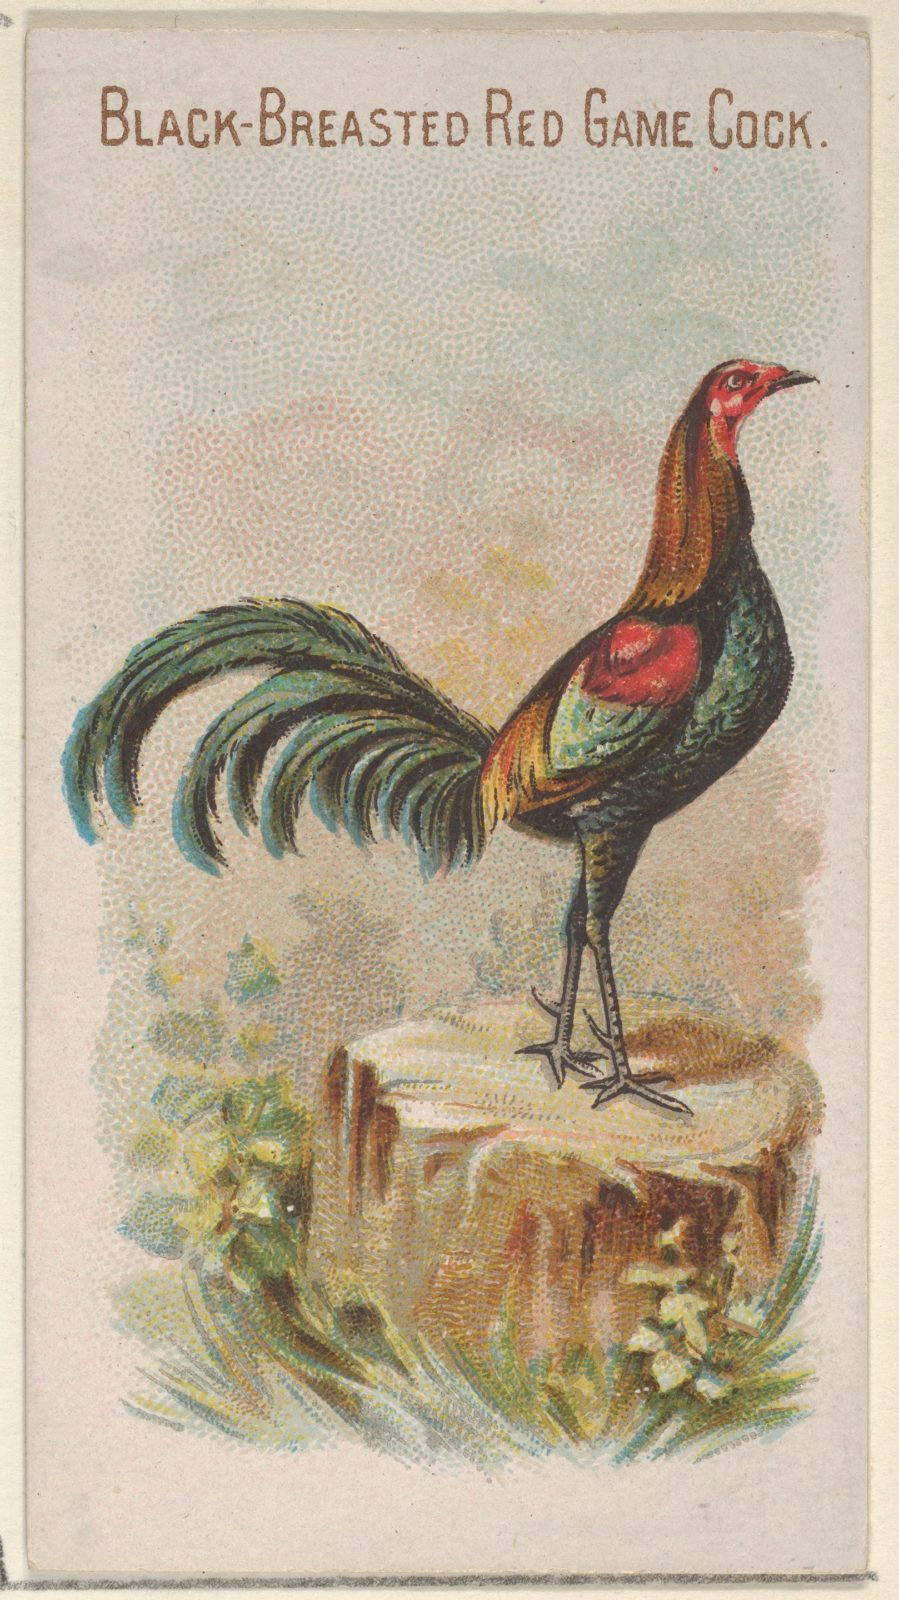 Black-Breasted Red Game Cock, from the Prize and Game Chickens series (N20) for Allen & Ginter Cigarettes